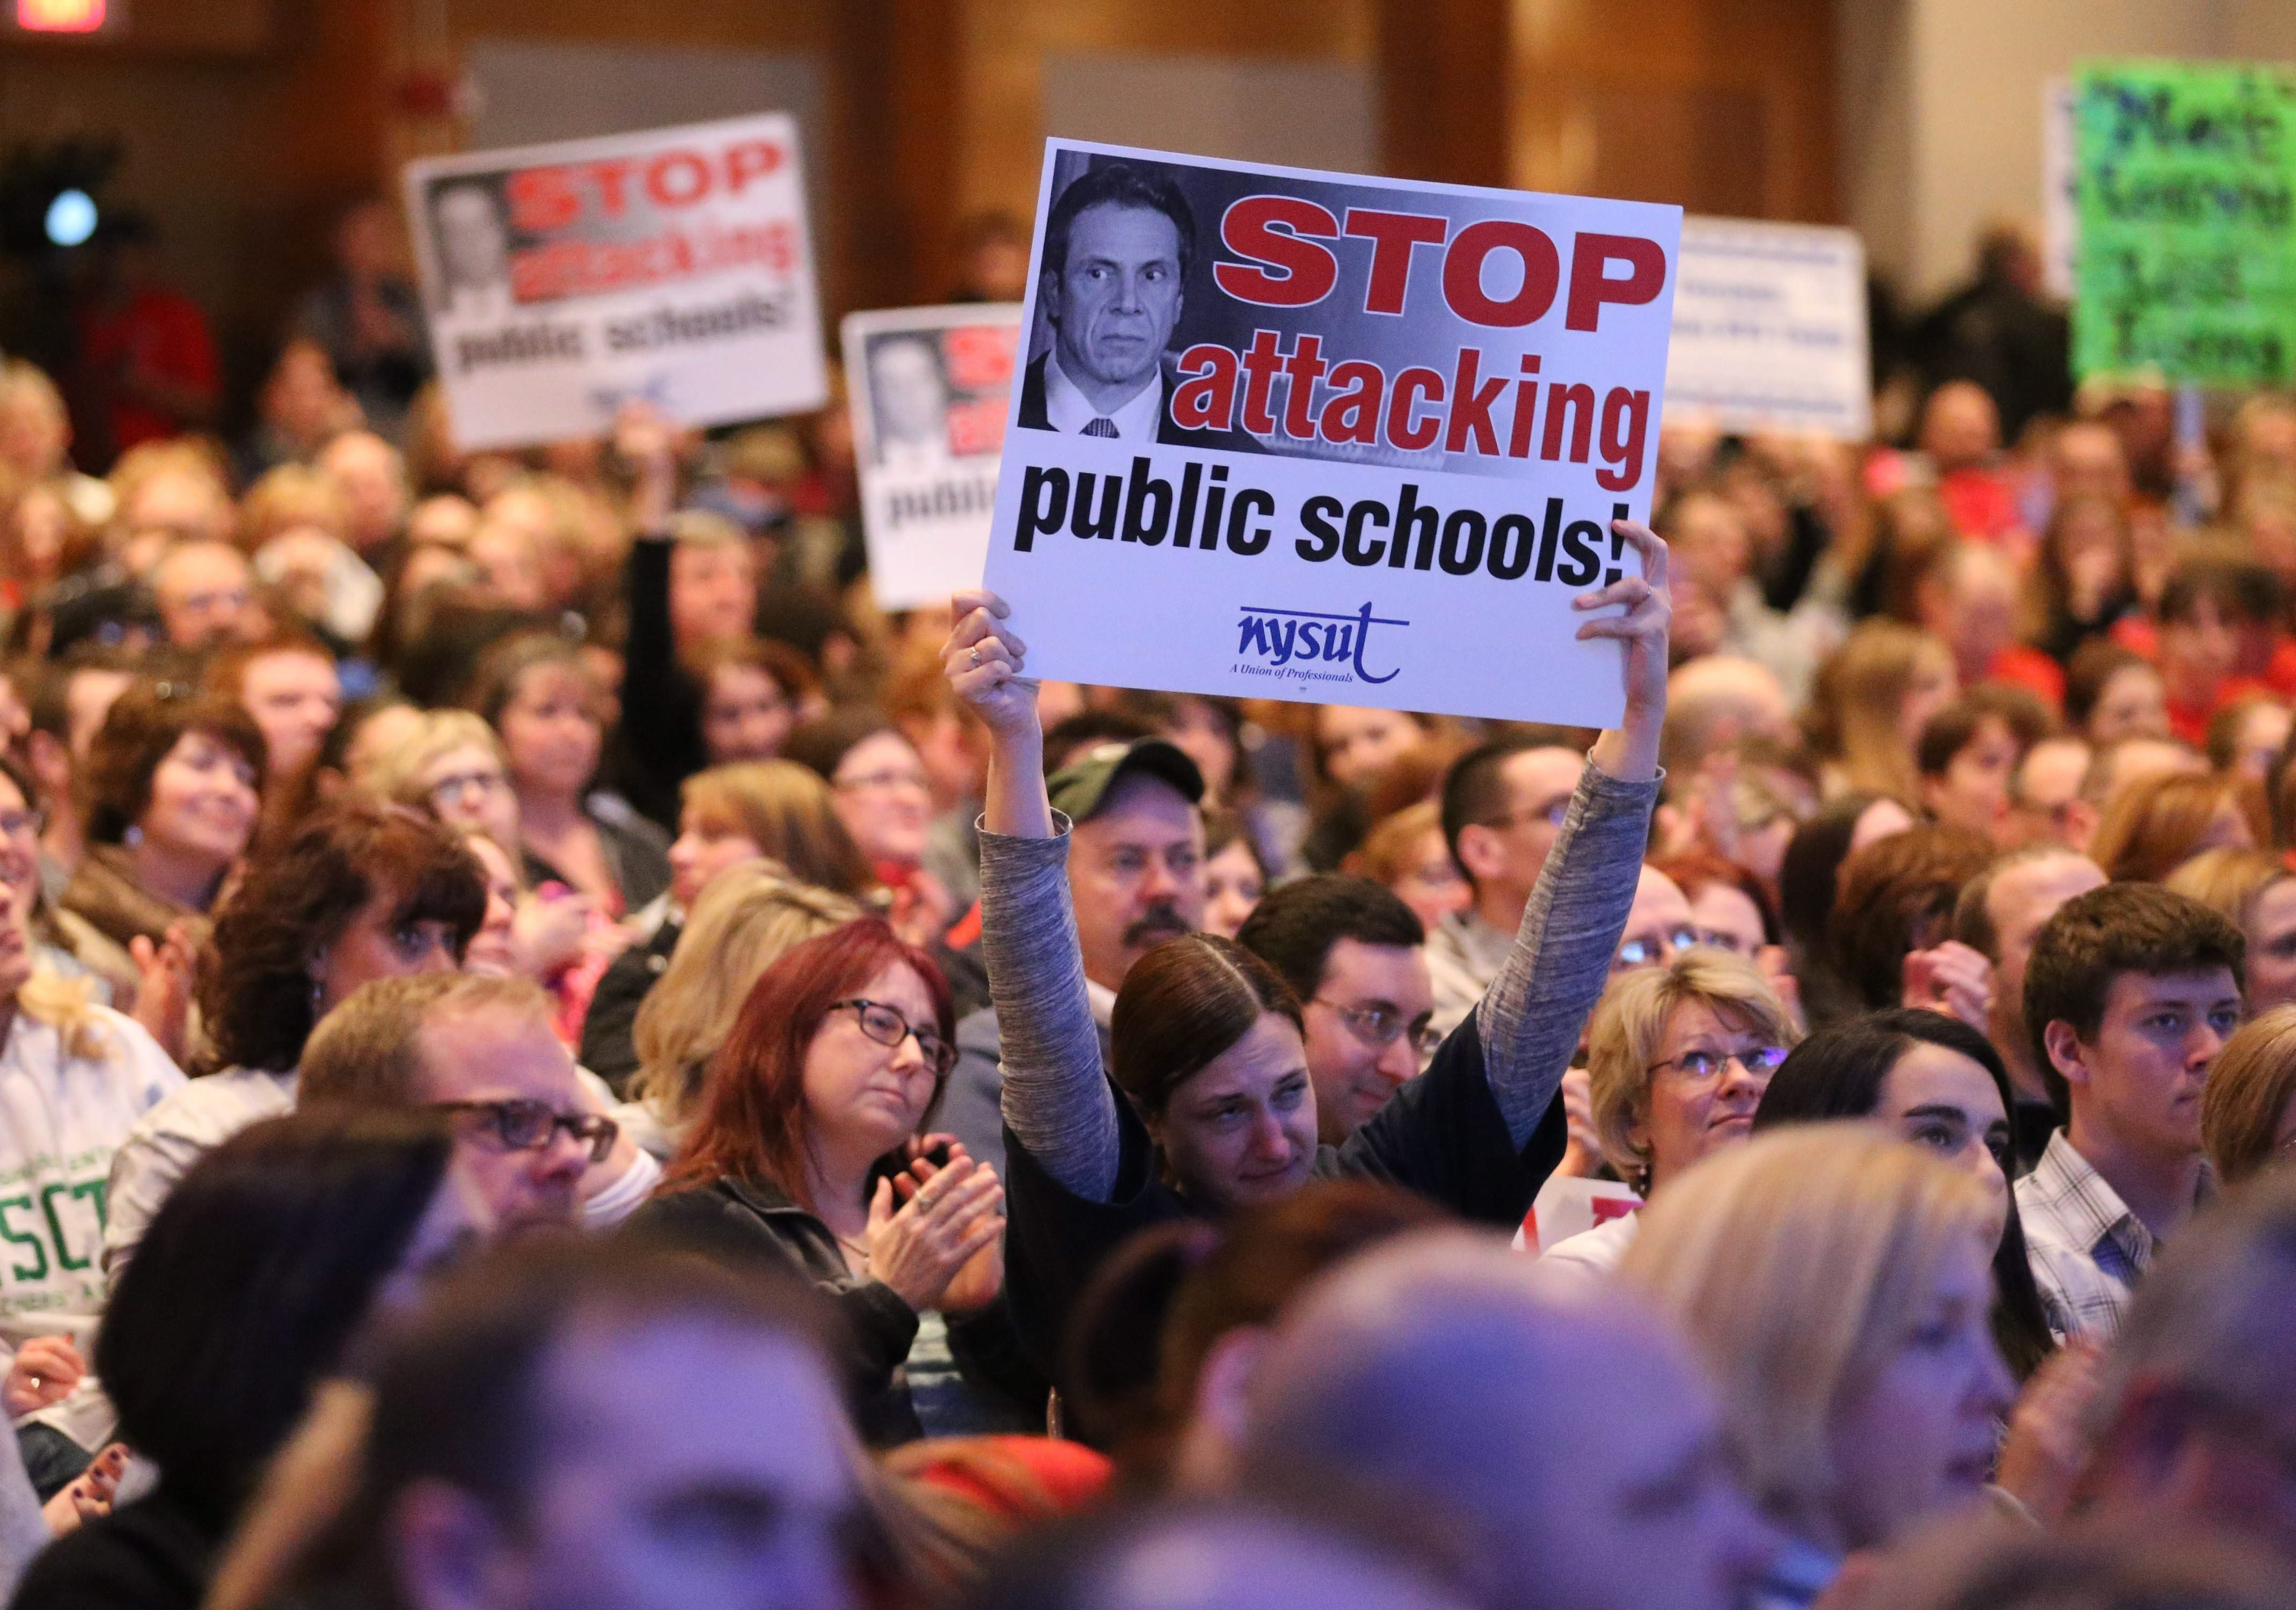 About 1,500 teachers and community members, some carrying NYSUT signs, gathered at West Seneca West on Feb. 26, 2015, to rally against proposals made by Gov. Andrew M. Cuomo. (Sharon Cantillon/Buffalo News)